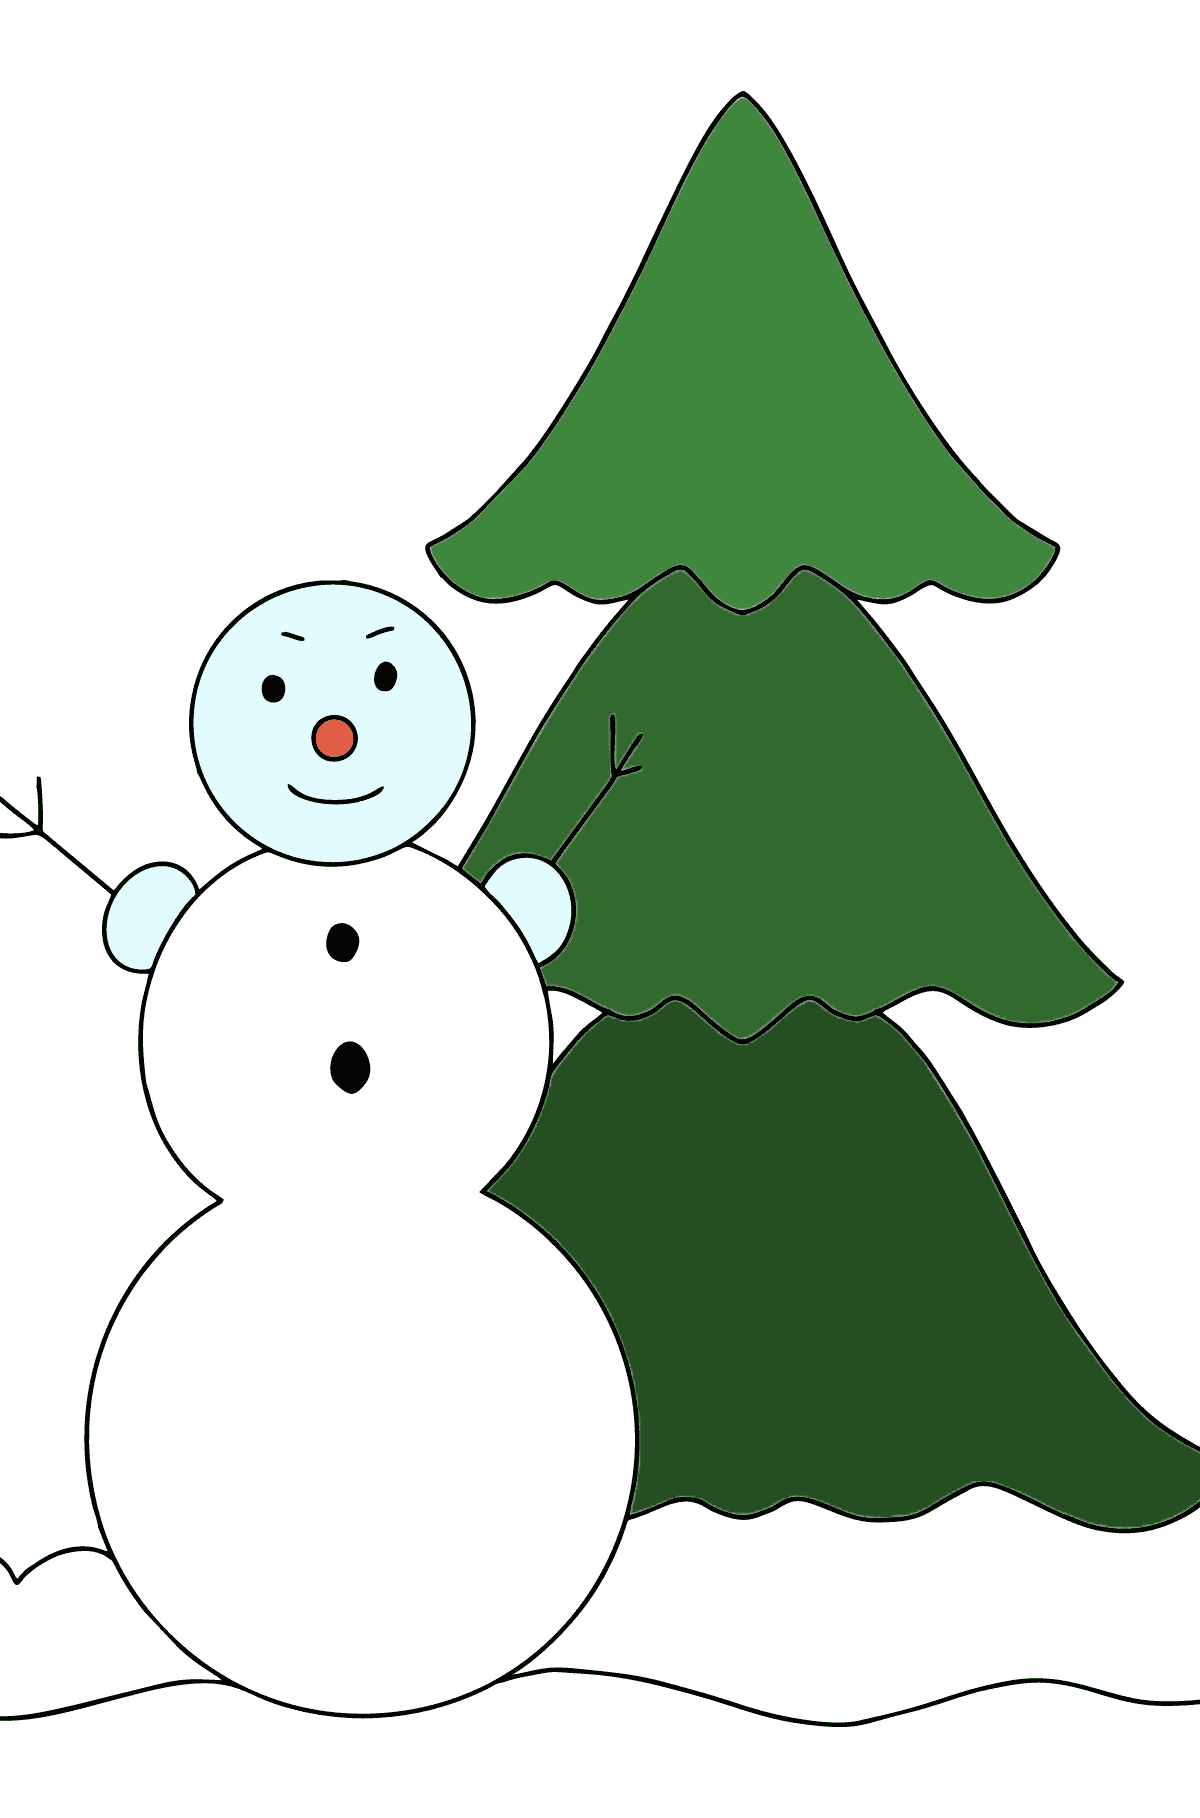 Winter Coloring Page - A Snowman with a Christmas Tree - Coloring Pages for Kids